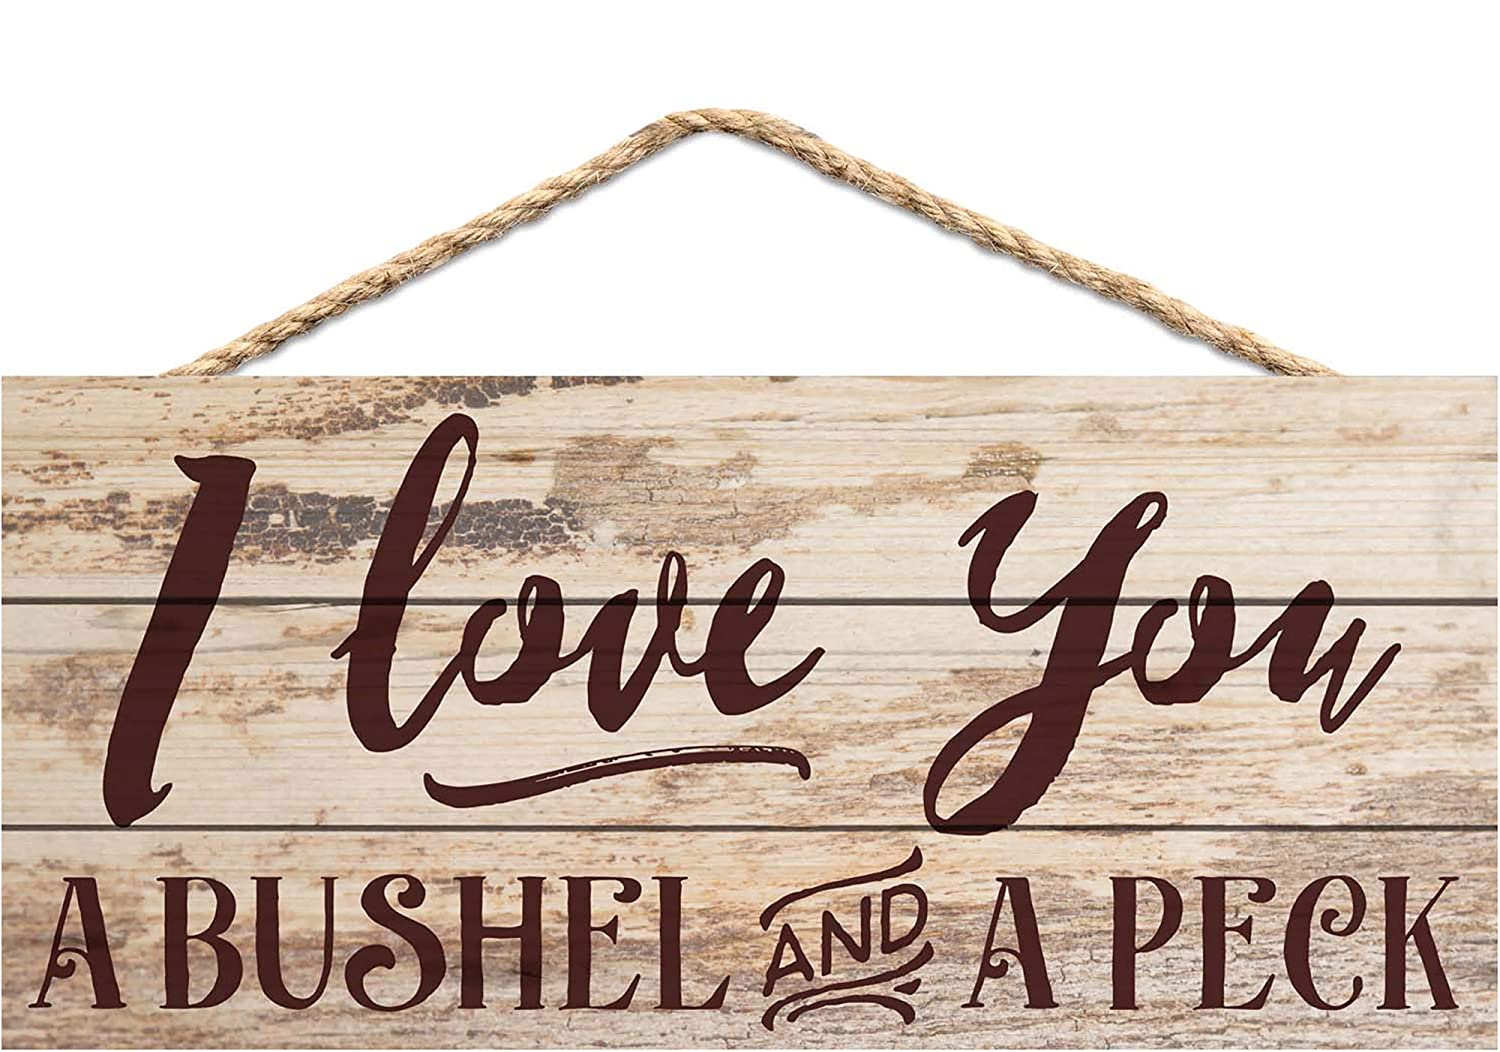 P. Graham Dunn Love You a Bushel and a Peck Distressed Look 5 x 10 Wood Plank Design Hanging Sign